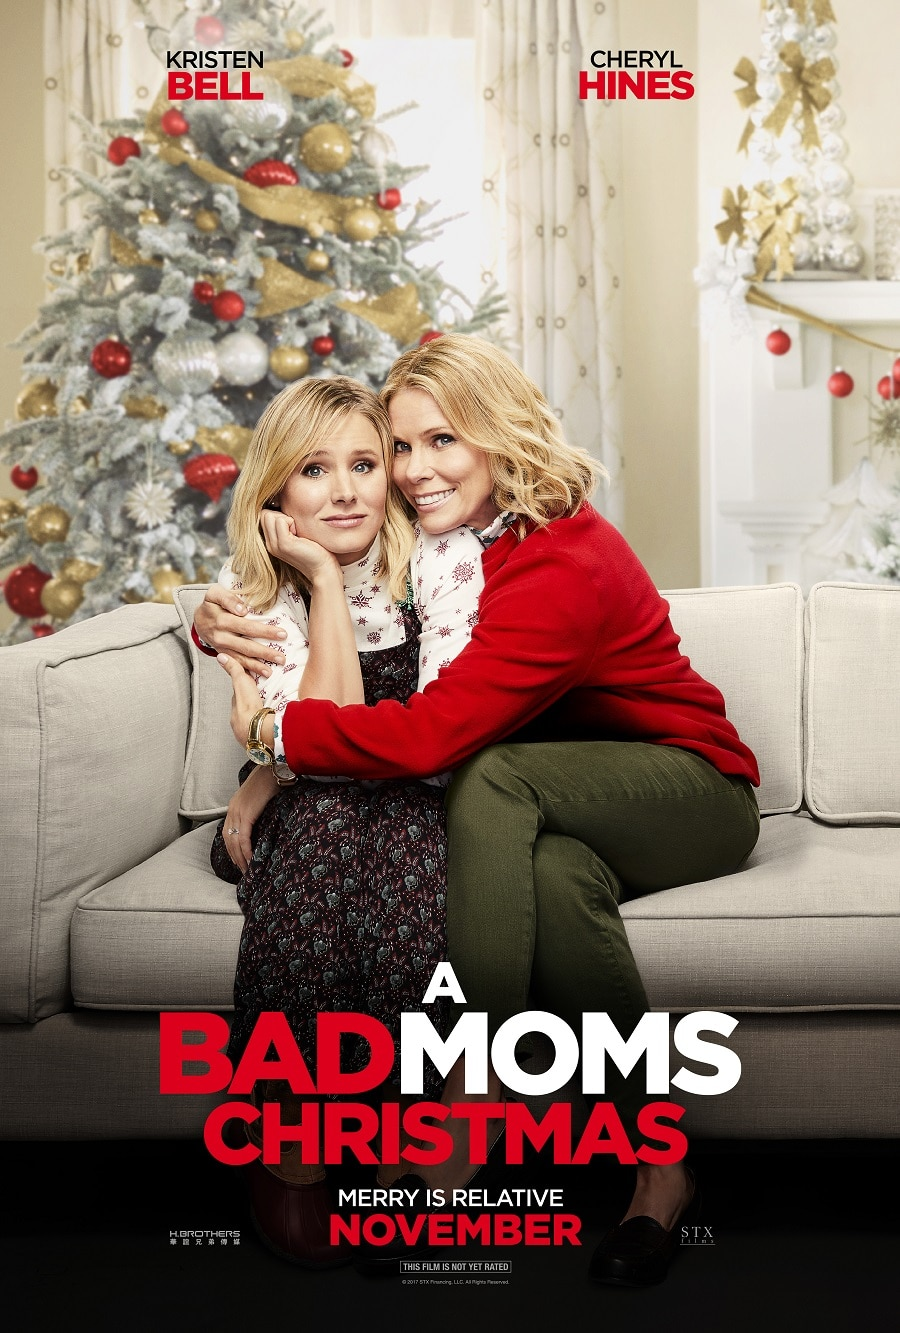 Bad Moms Christmas - Cheryl Hines and Kristen Bell